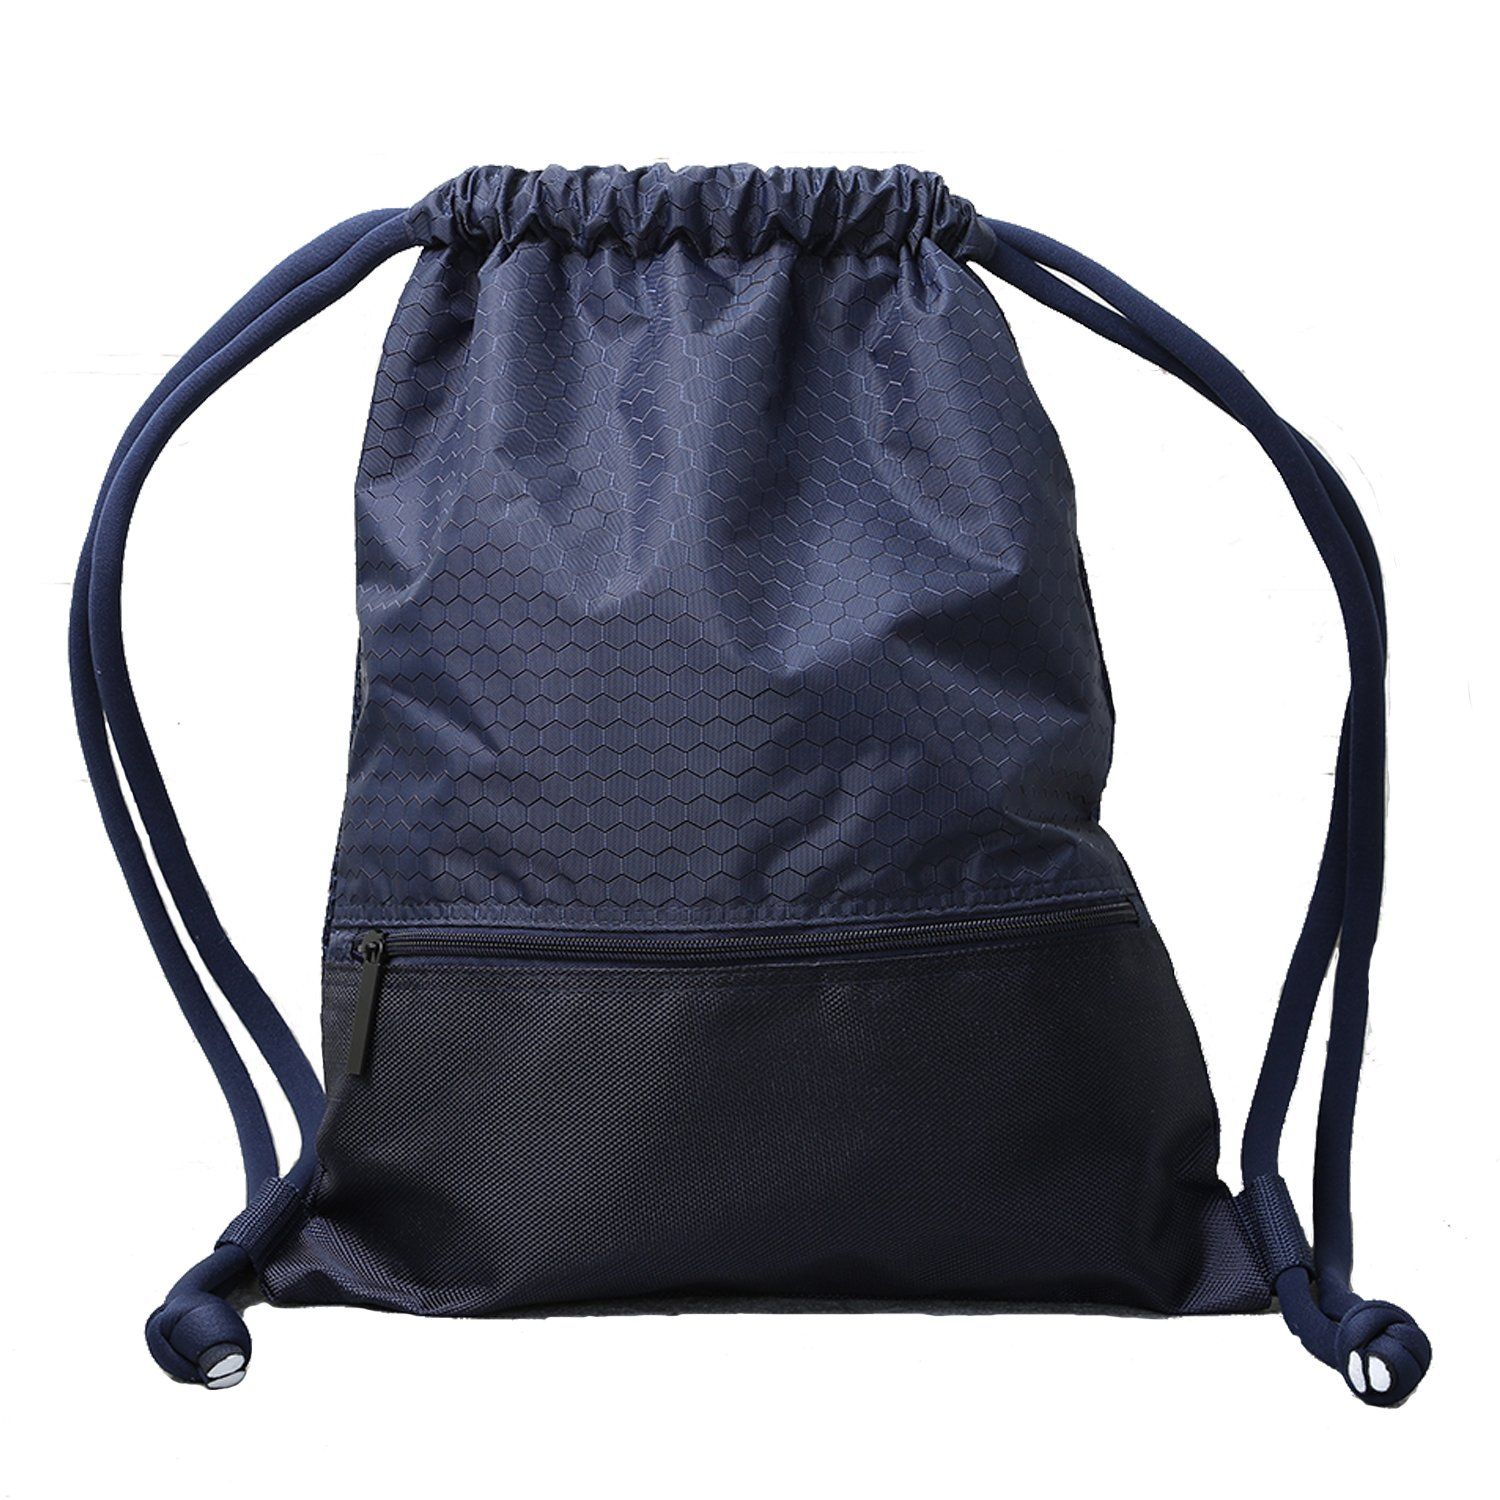 Double Sturdy Drawstring Bag With Pockets Waterproof | For Sports & Workout Gear | Large Capacity String Backpack | 8 Colors (Large, Navy) by Haoguagua (Image #1)